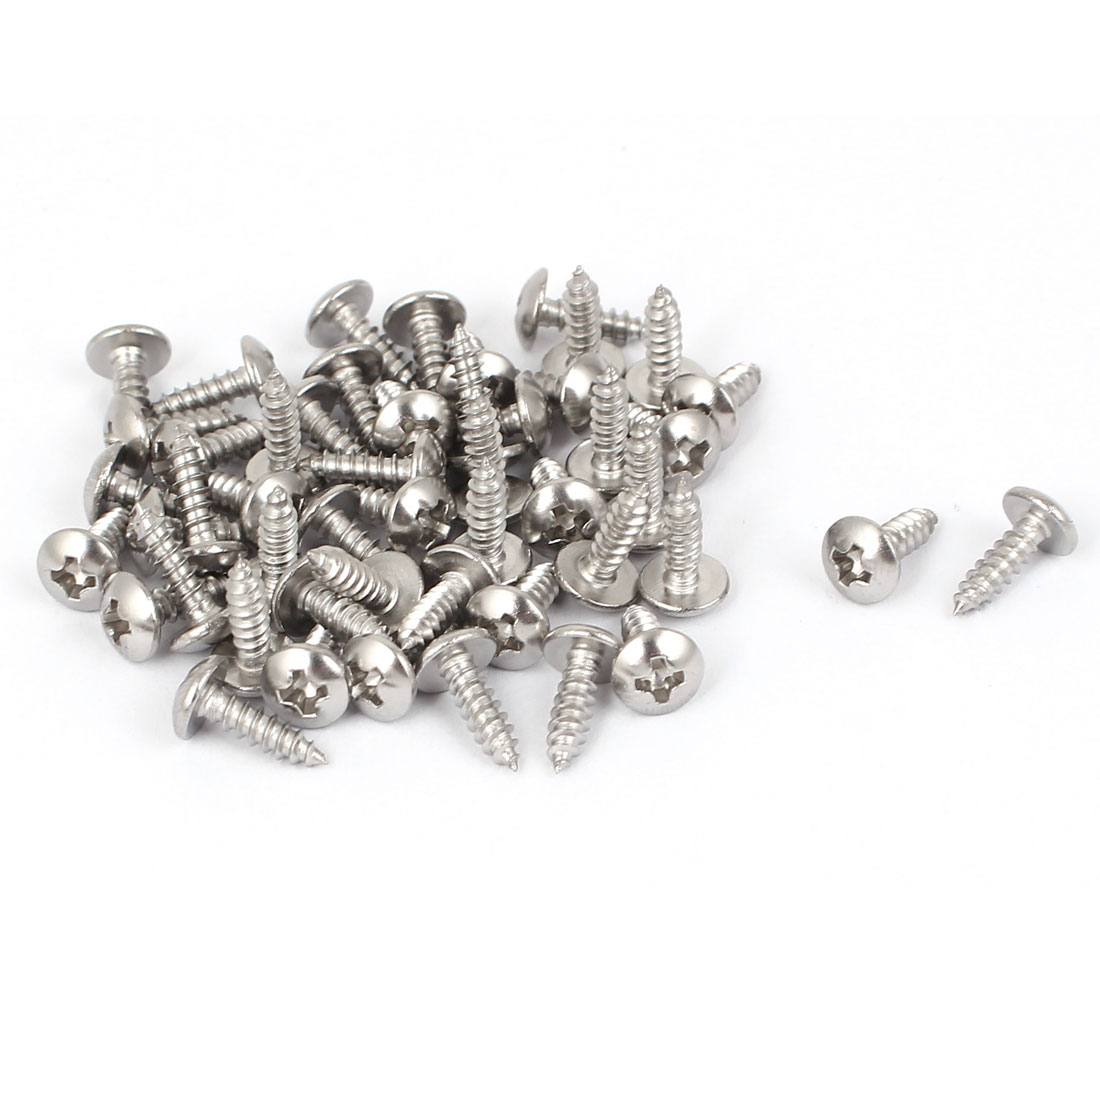 #4 M2.9x9.5mm Stainless Steel Phillips Truss Head Self Tapping Screws 50pcs